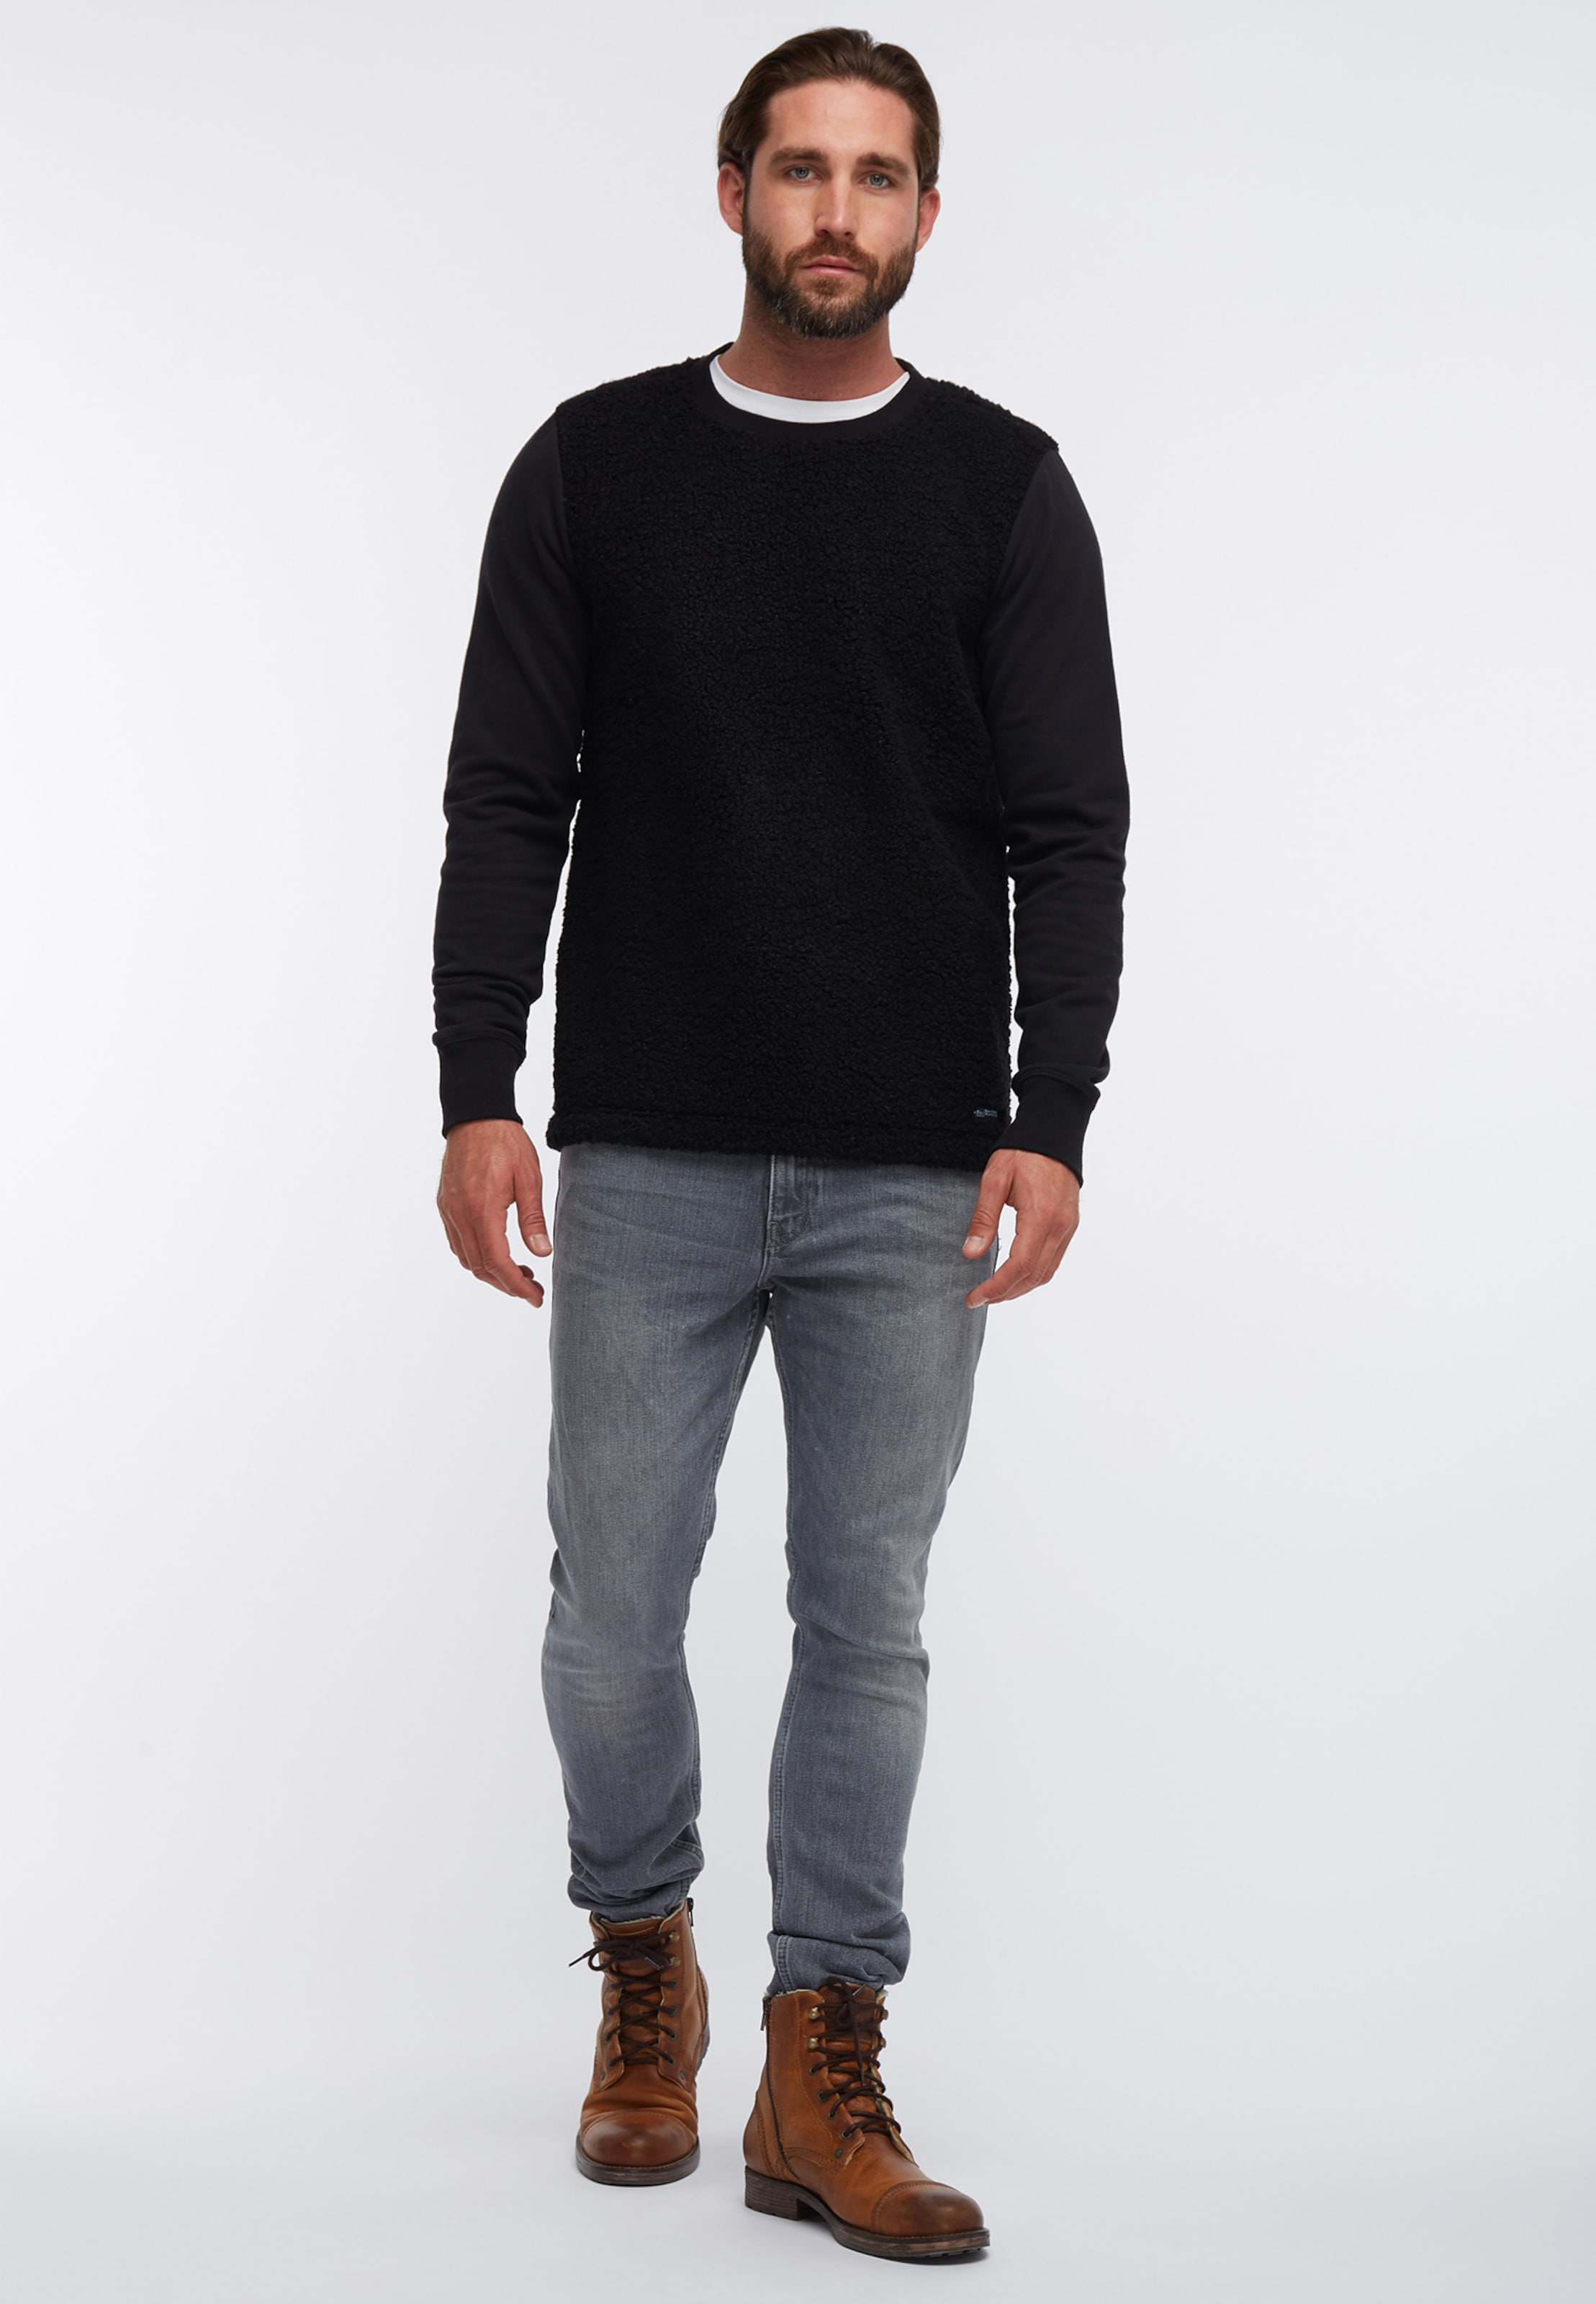 Dreimaster Sweat shirt En MarineNoir Sweat shirt MarineNoir Dreimaster En sQdhrt